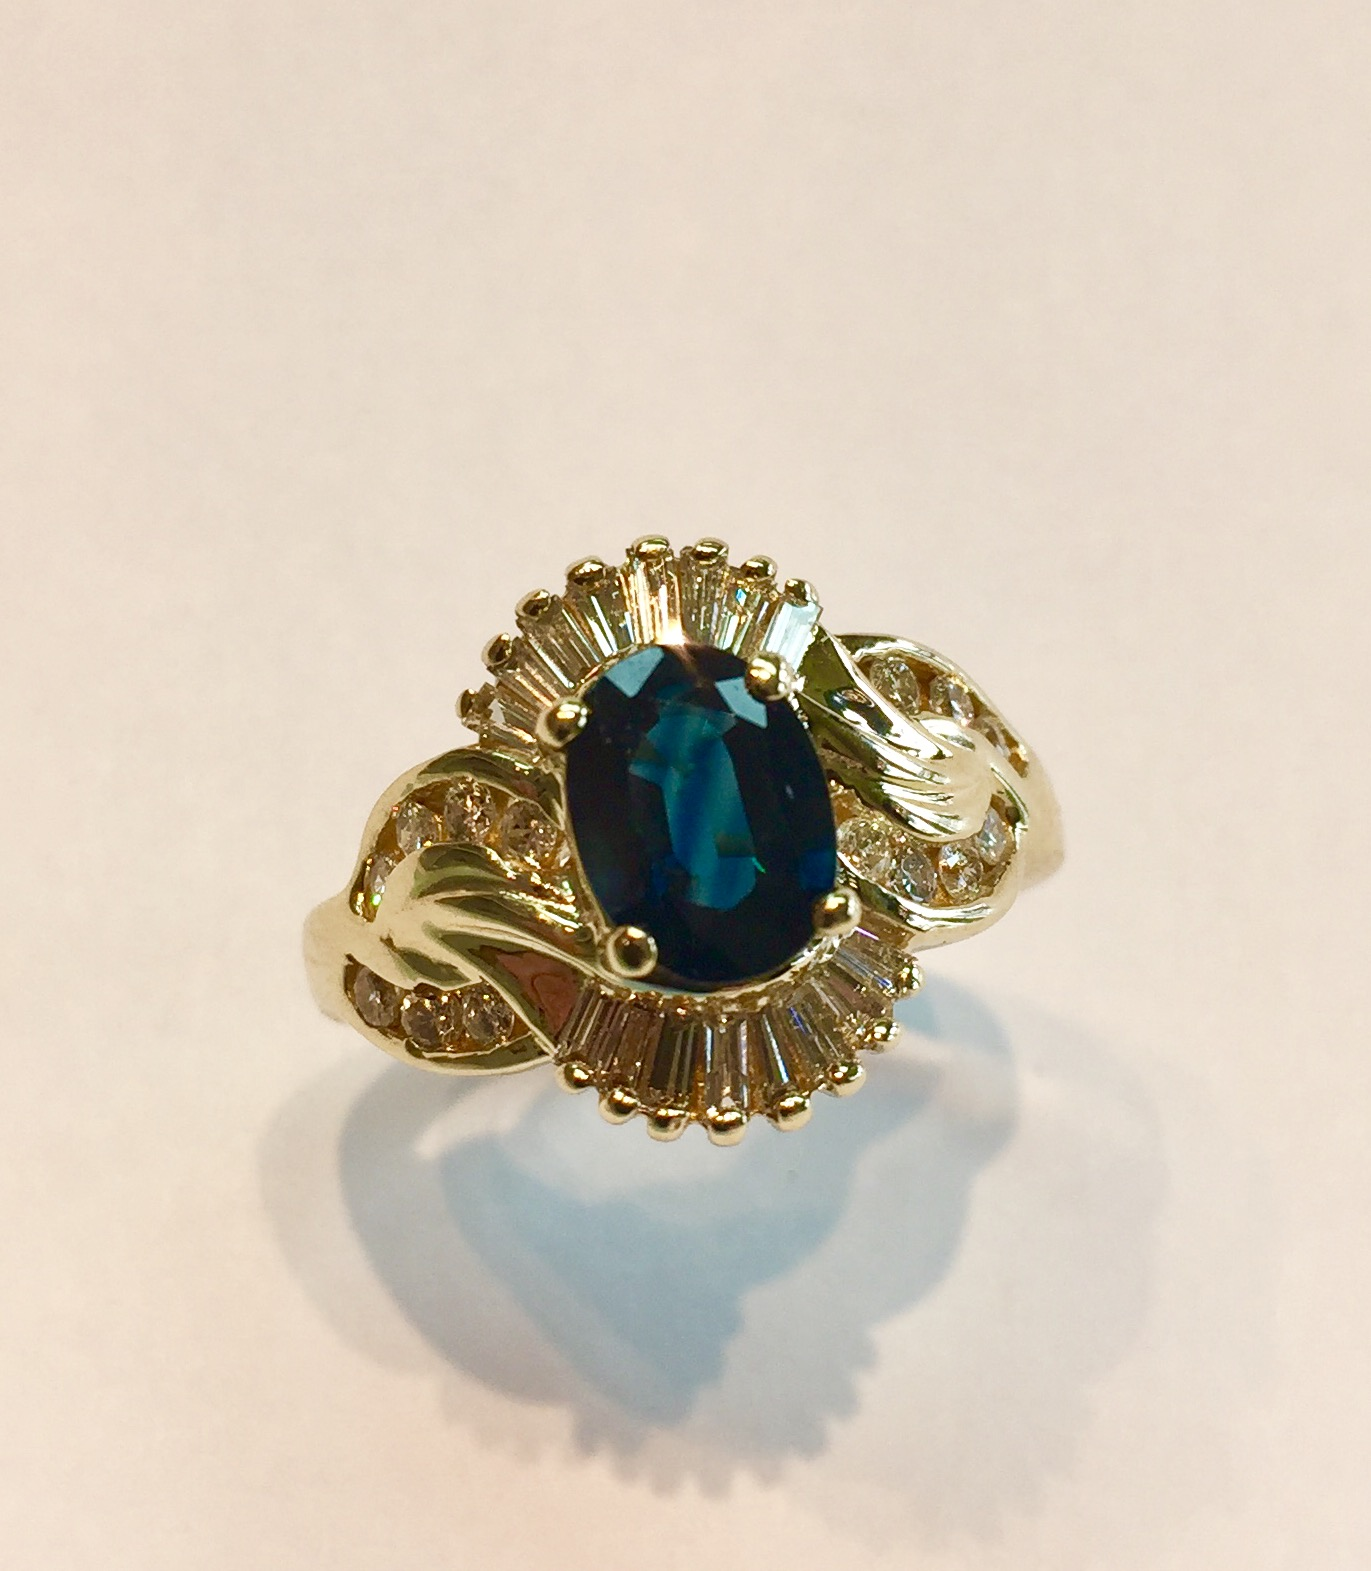 Item AB21 USD 745  14k Yellow Gold Blue Sapphire Diamond Ring  A classic ring with approximately 1.55 carat of sapphire and .45 carat of sparkling white diamonds.  Pristine condition.